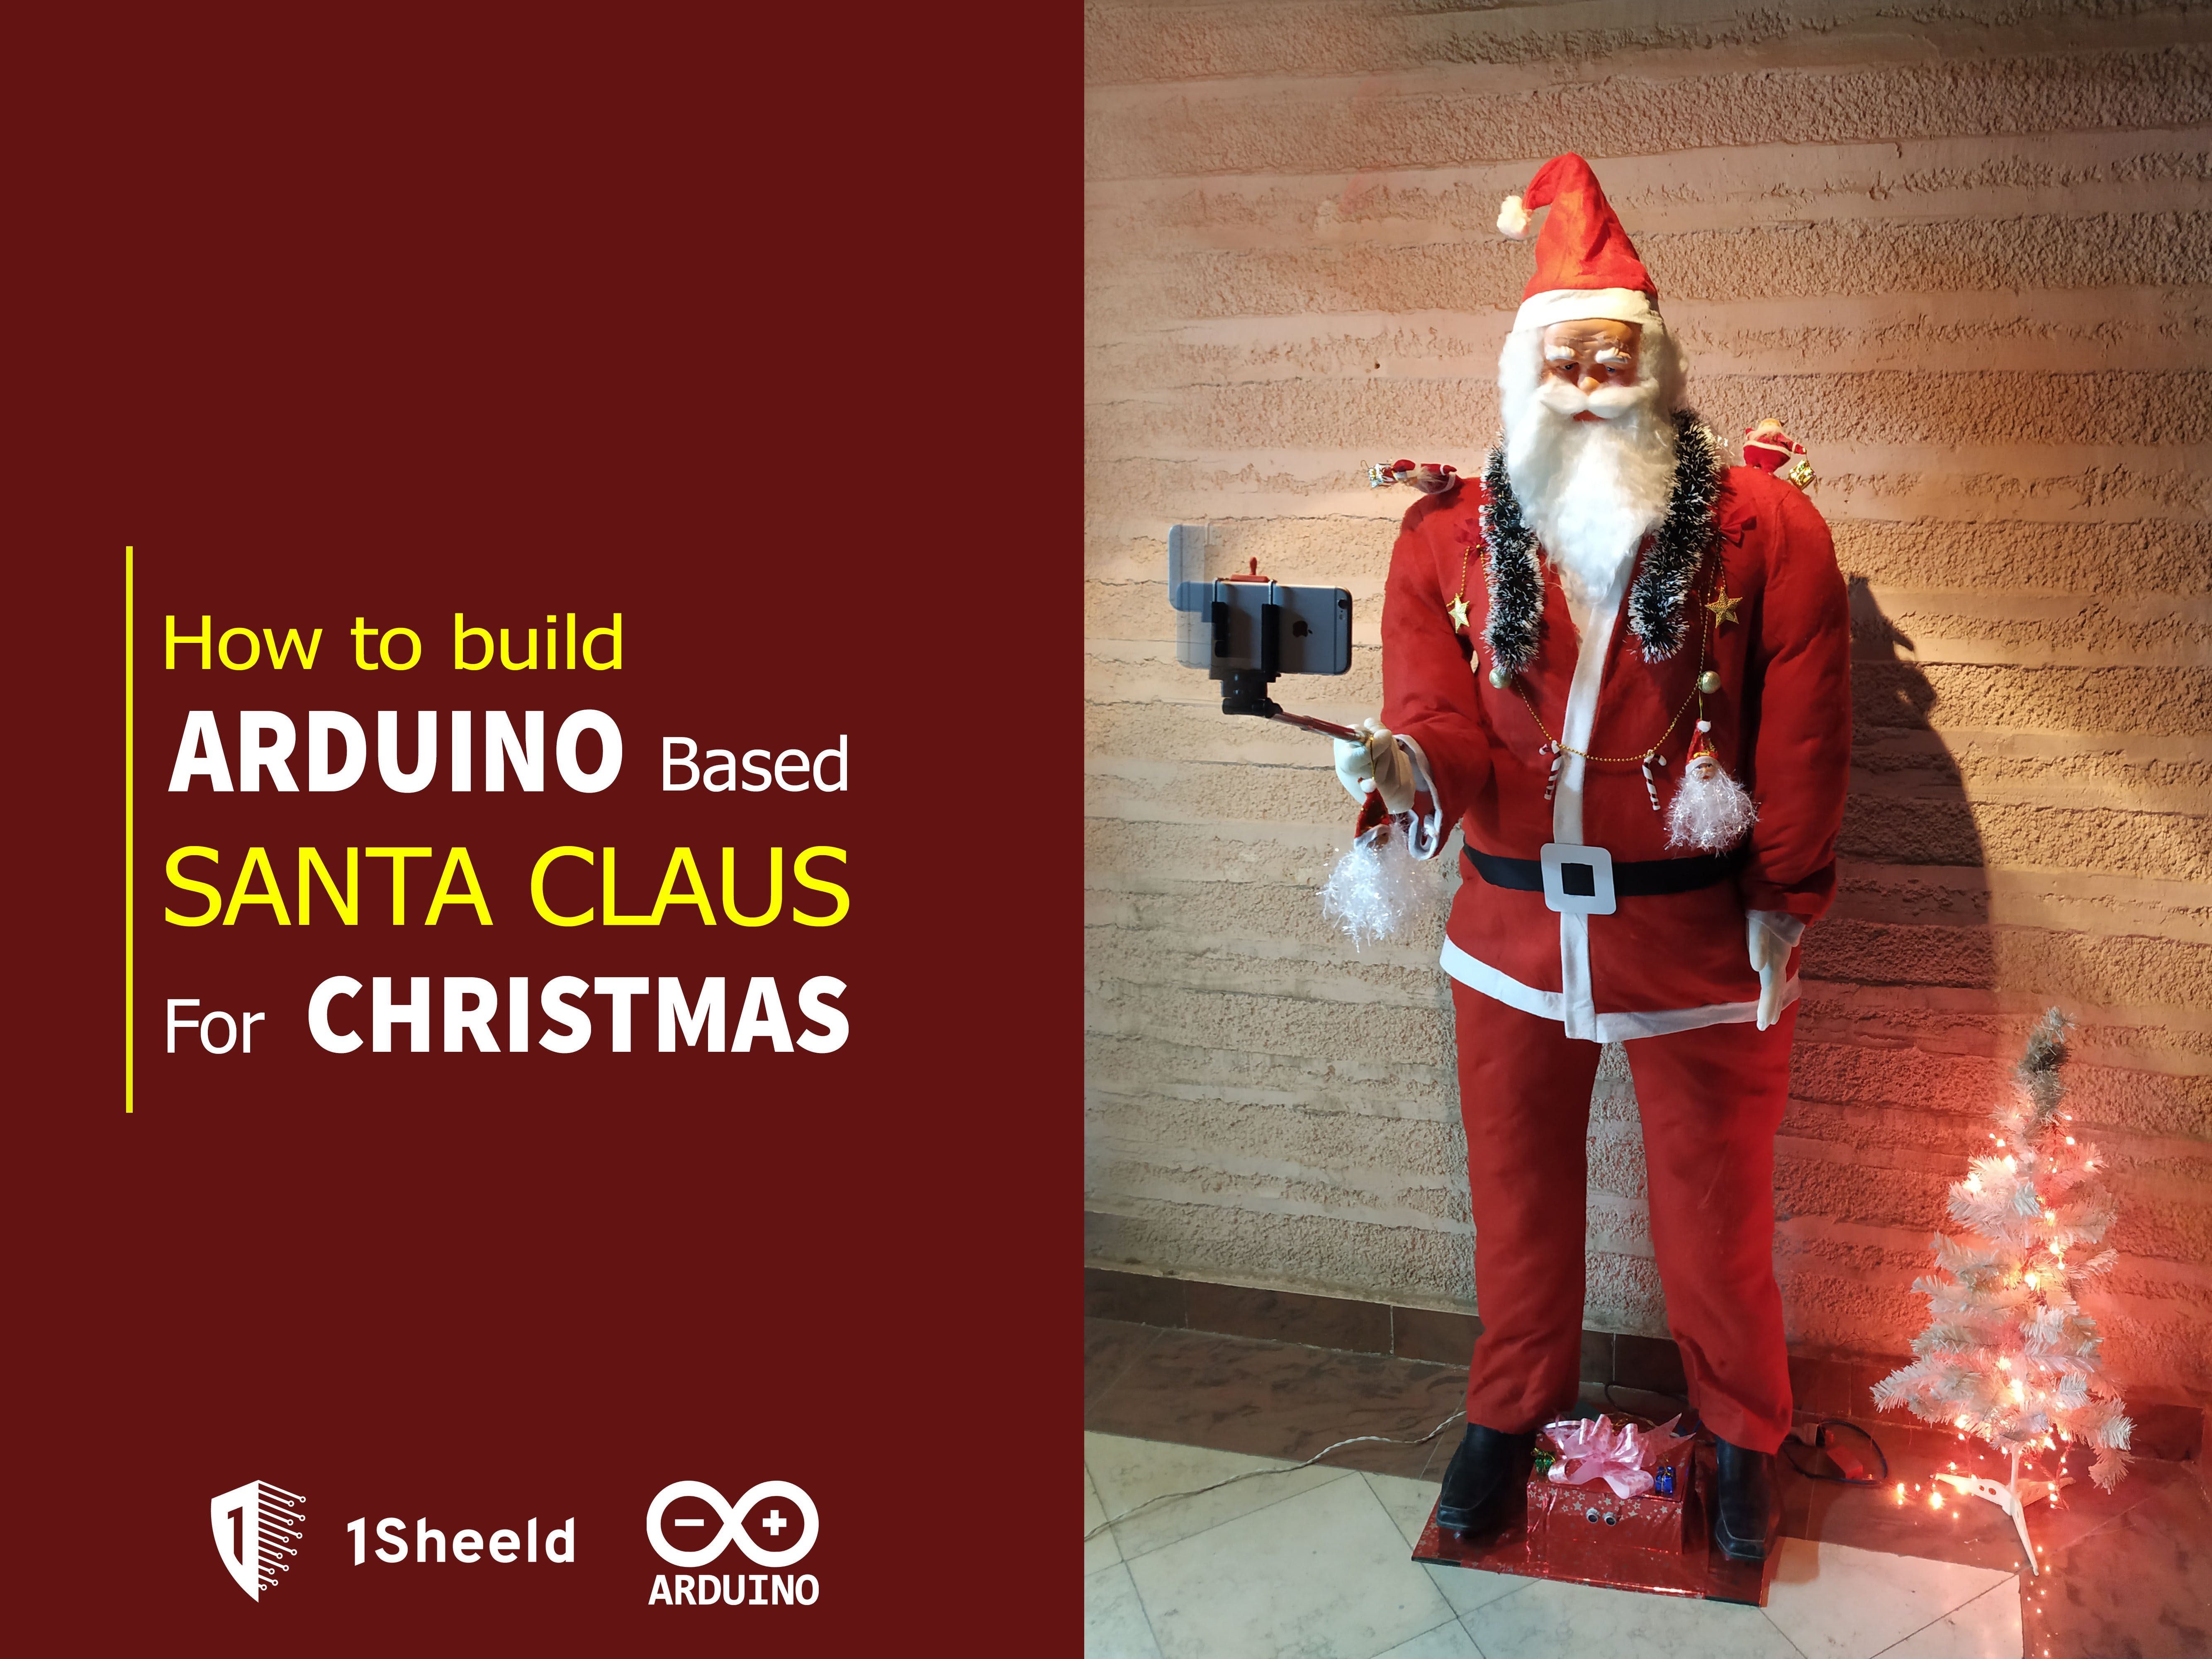 How to Build an Arduino-Based Santa Claus for Christmas